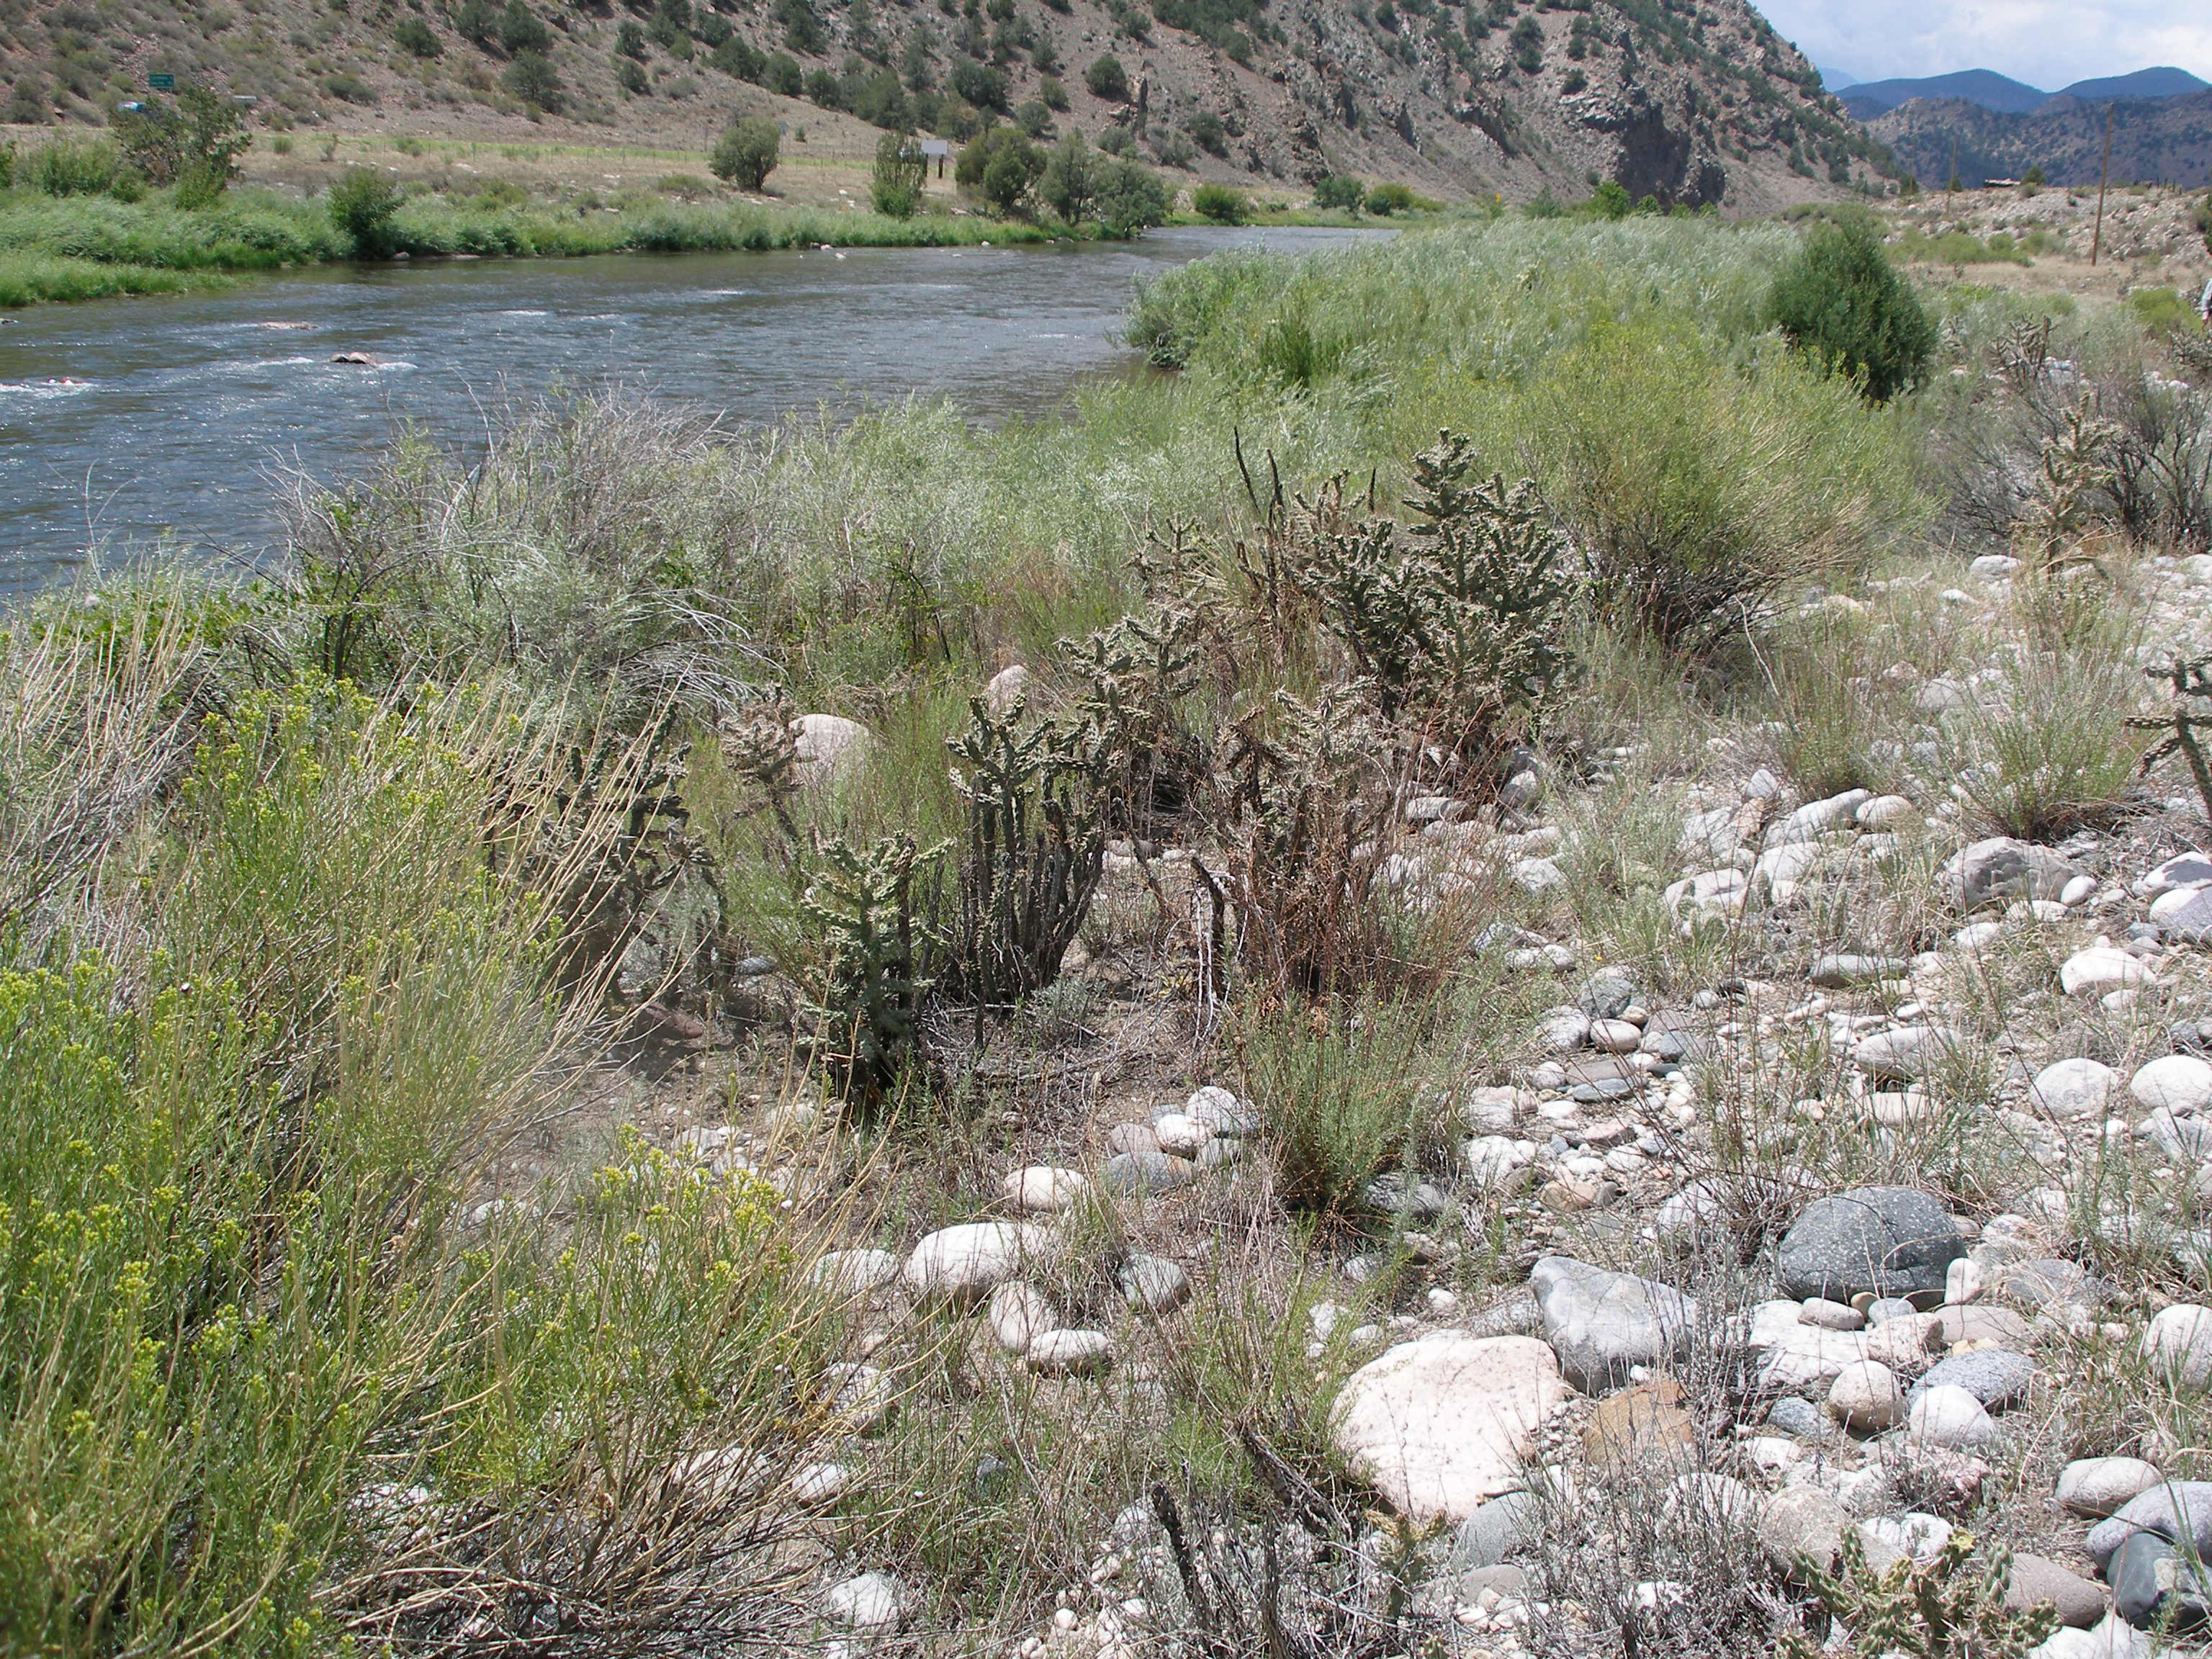 View Upstream from Texas Creek